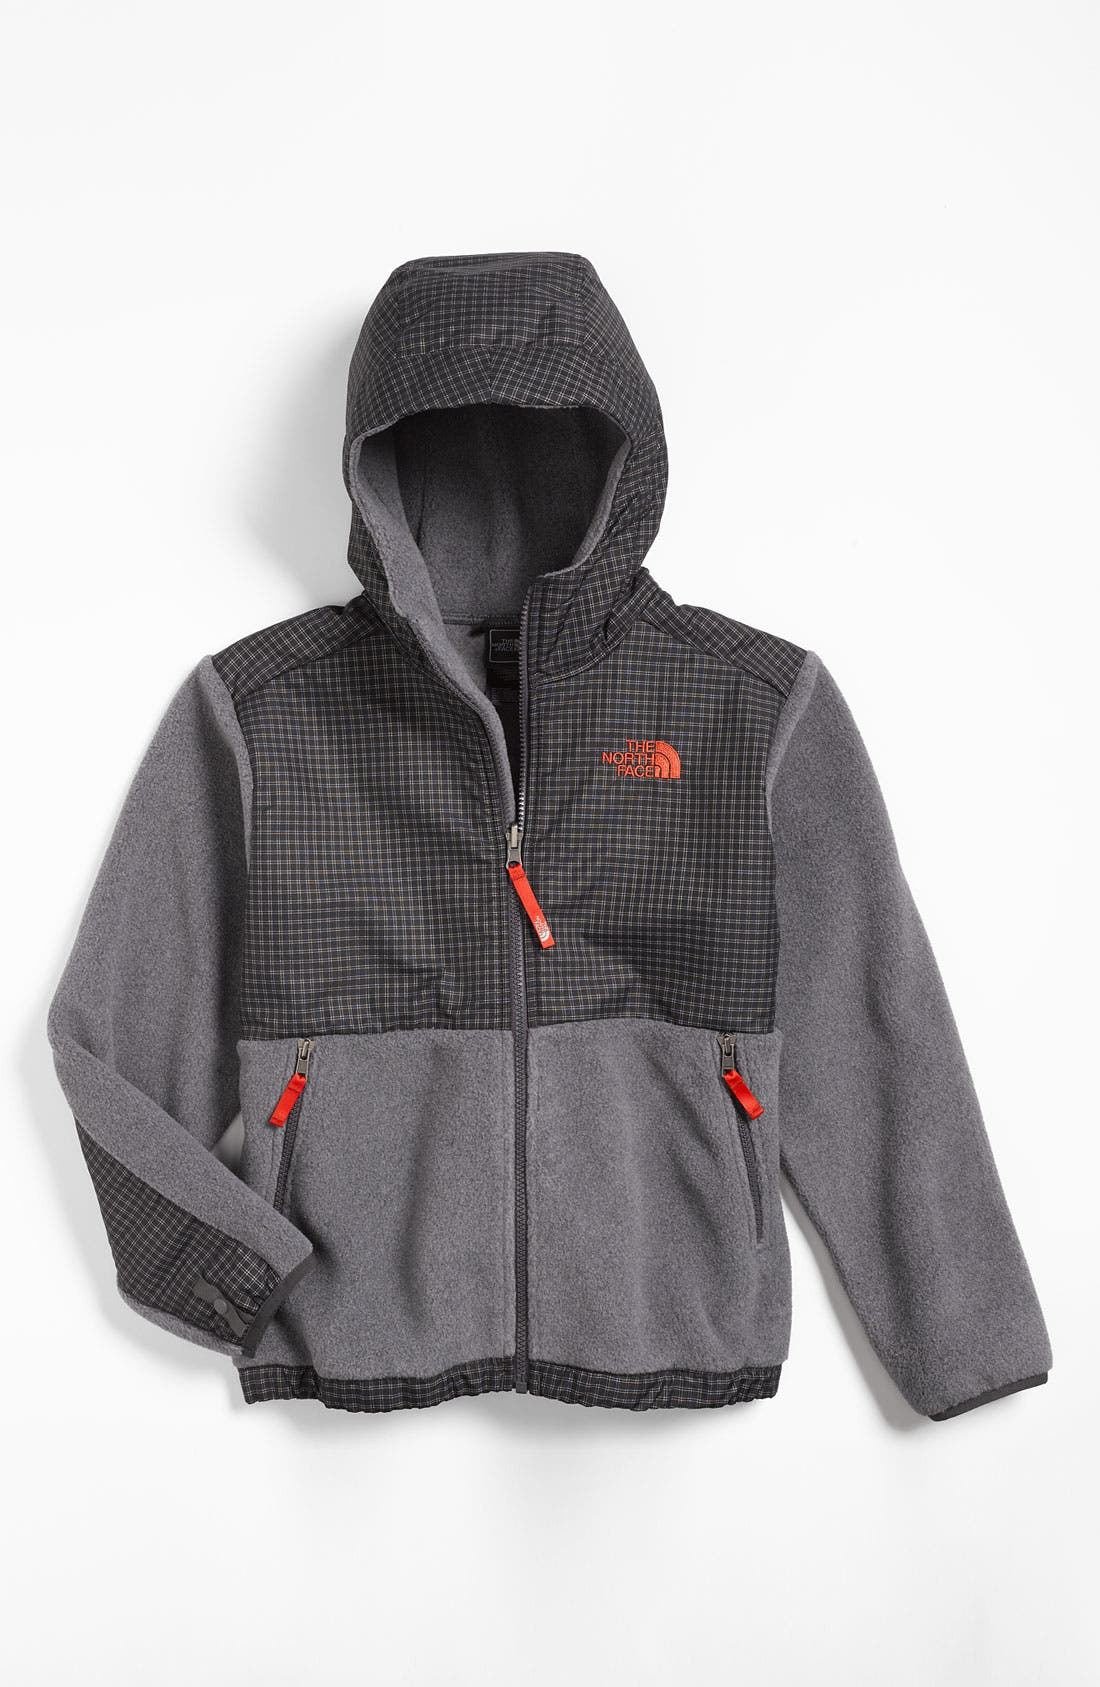 Alternate Image 1 Selected - The North Face 'Denali' Hoodie (Big Boys)